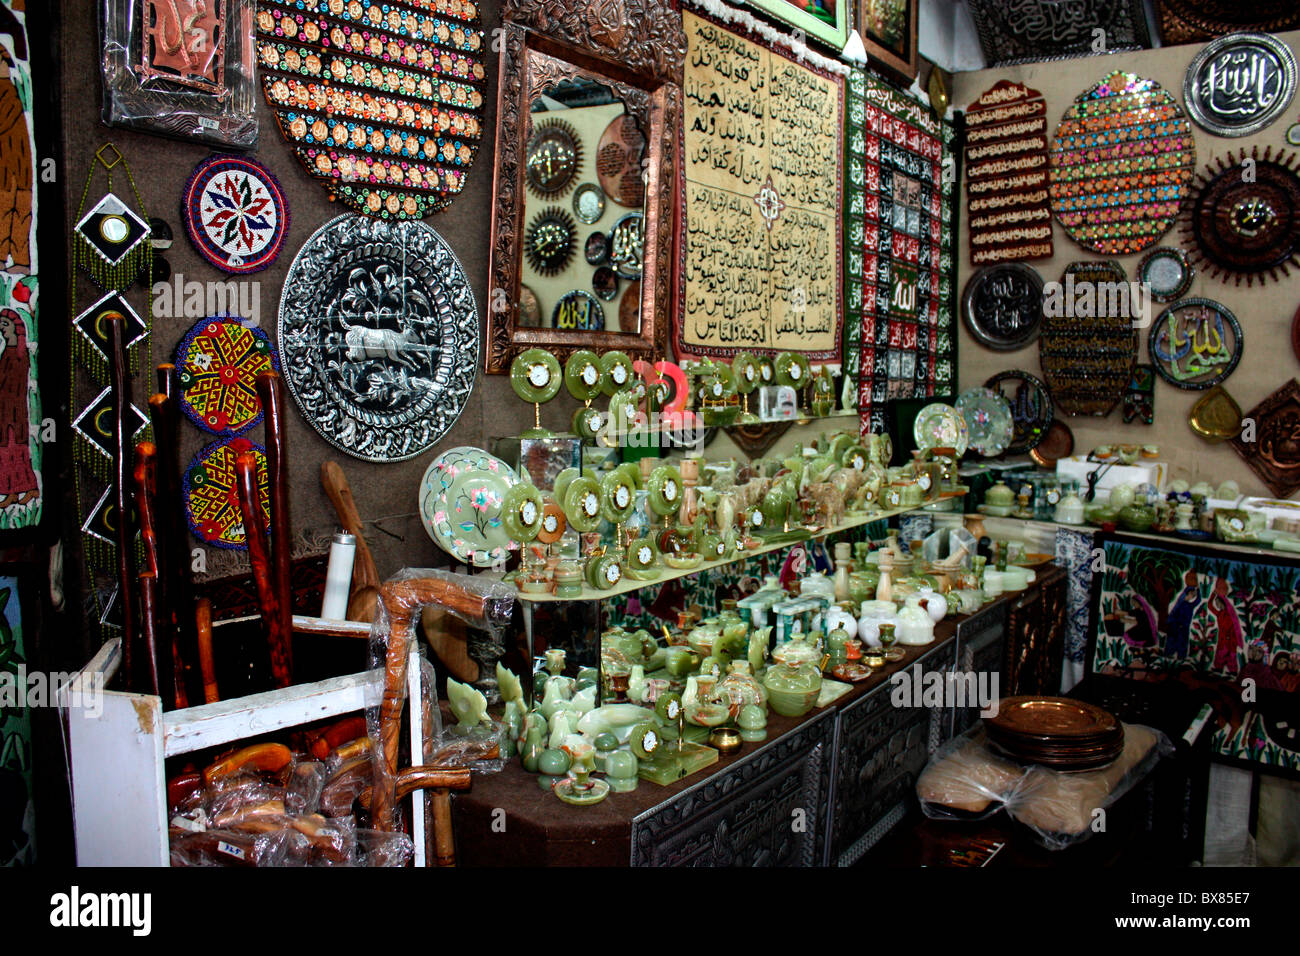 Onyx gemstone crafts on display in handicraft show room at Murree, PakistanStock Photo